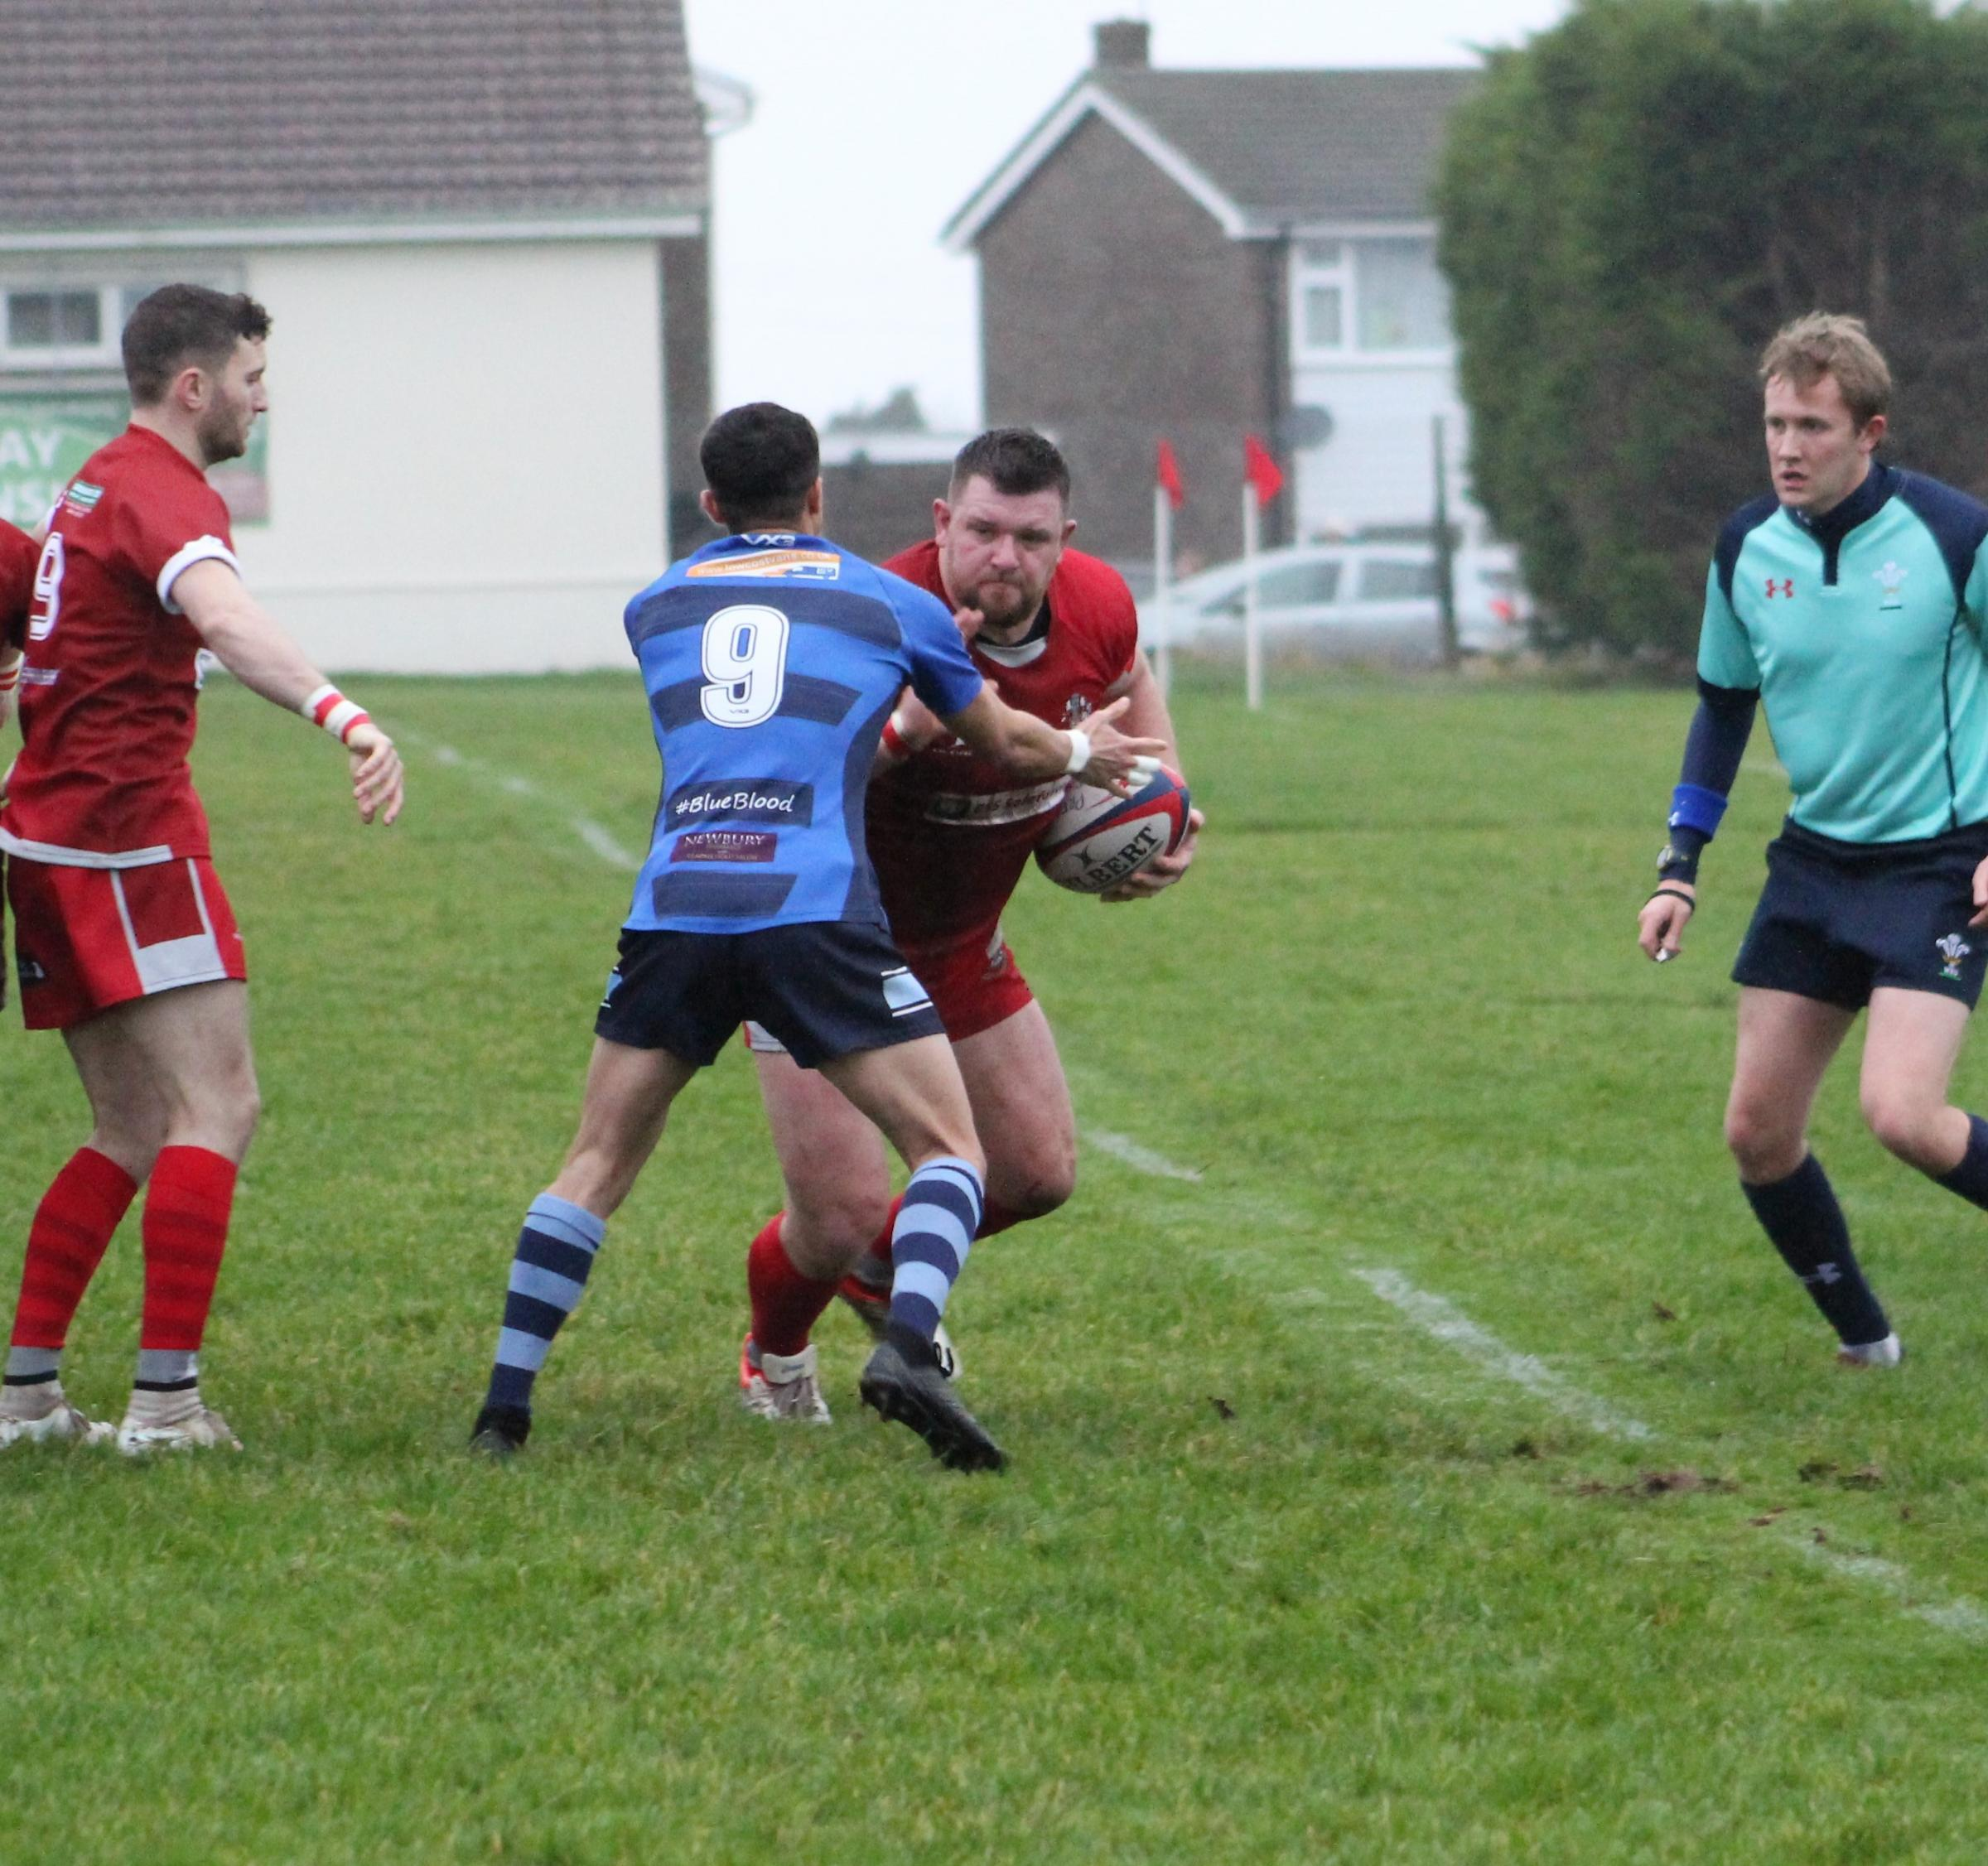 Sam Smith scored two tries for Pembroke. PICTURE: Daf Palmer.